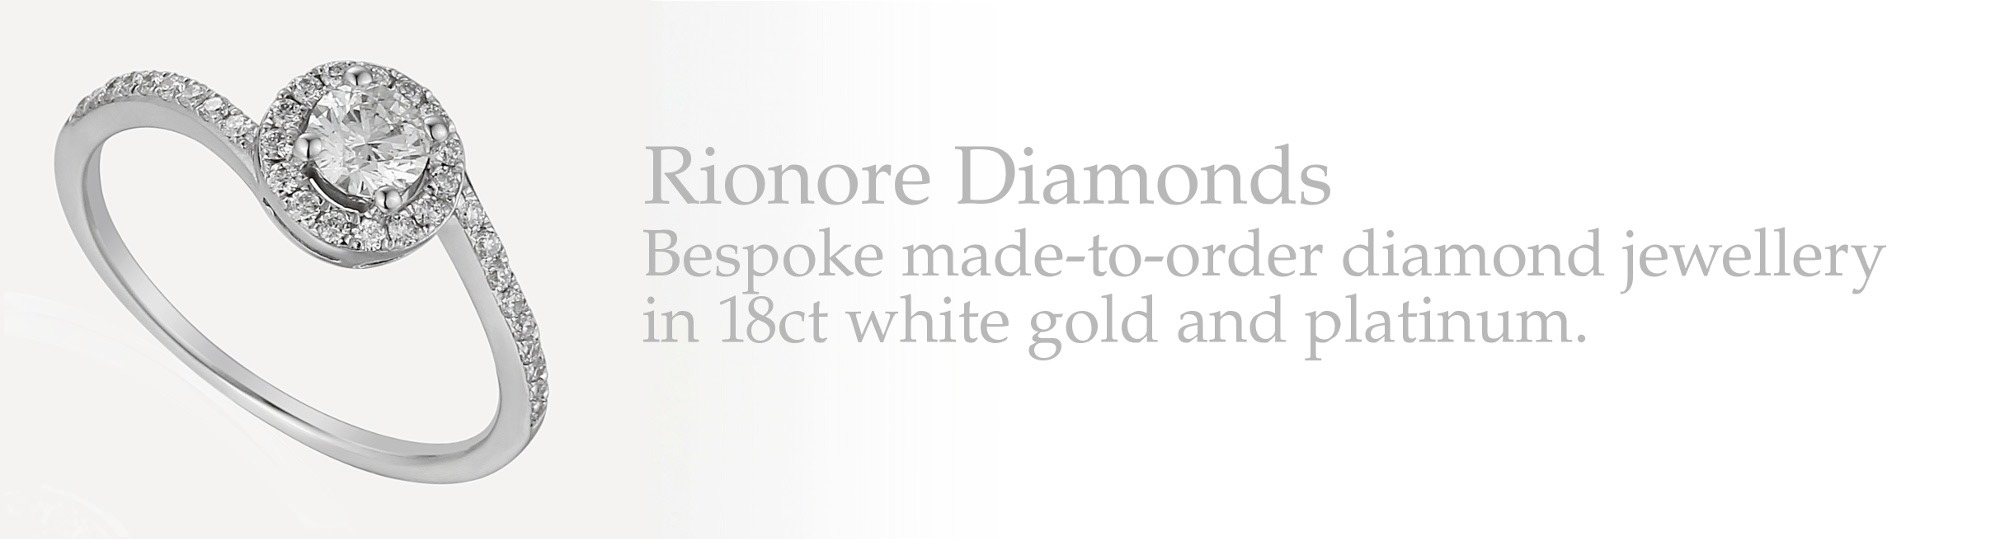 Bespoke made-to-order diamond jewellery in 18ct white gold and platinum